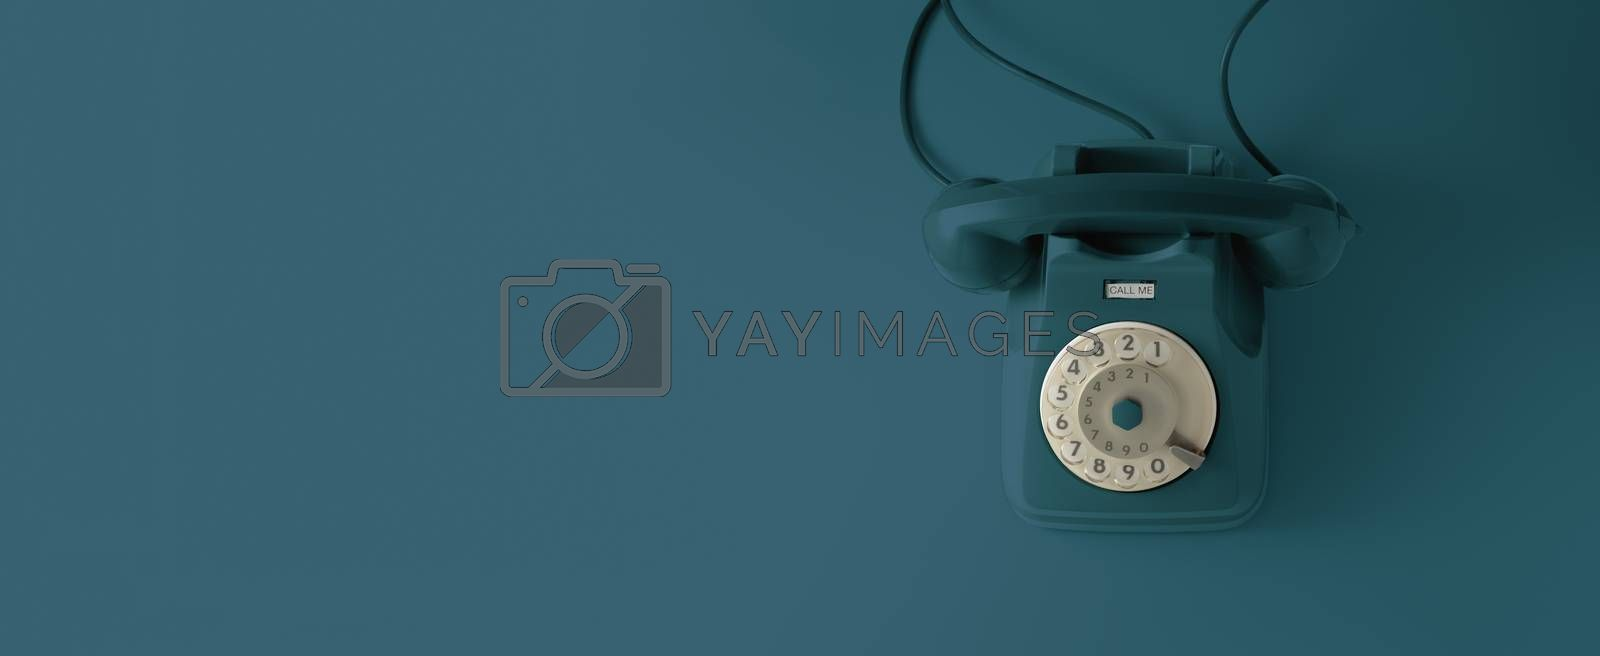 Royalty free image of An blue vintage dial telephone. by maramade